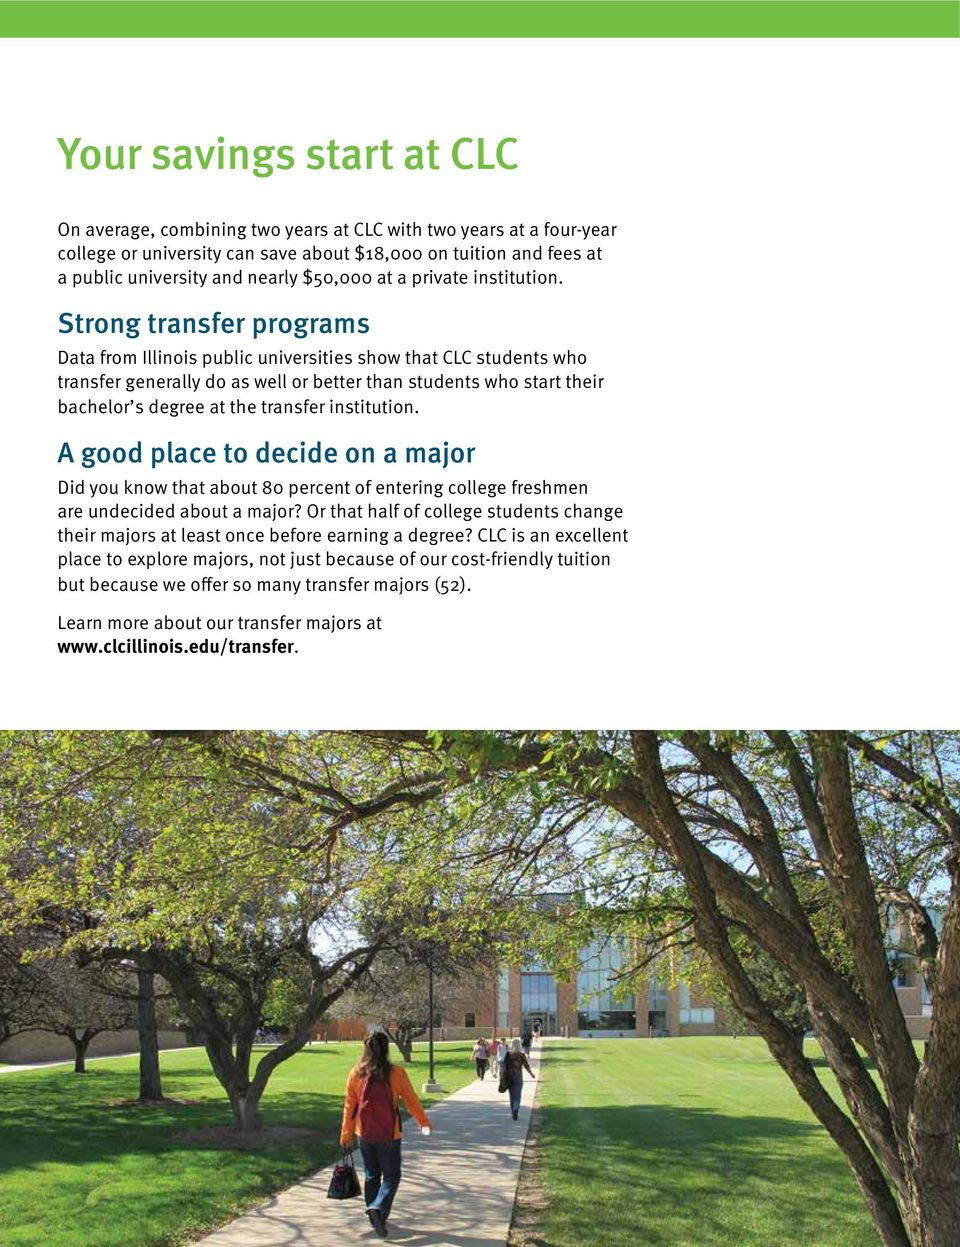 Strong transfer programs Data from Illinois public universities show that CLC students who transfer generally do as well or better than students who start their bachelor s degree at the transfer